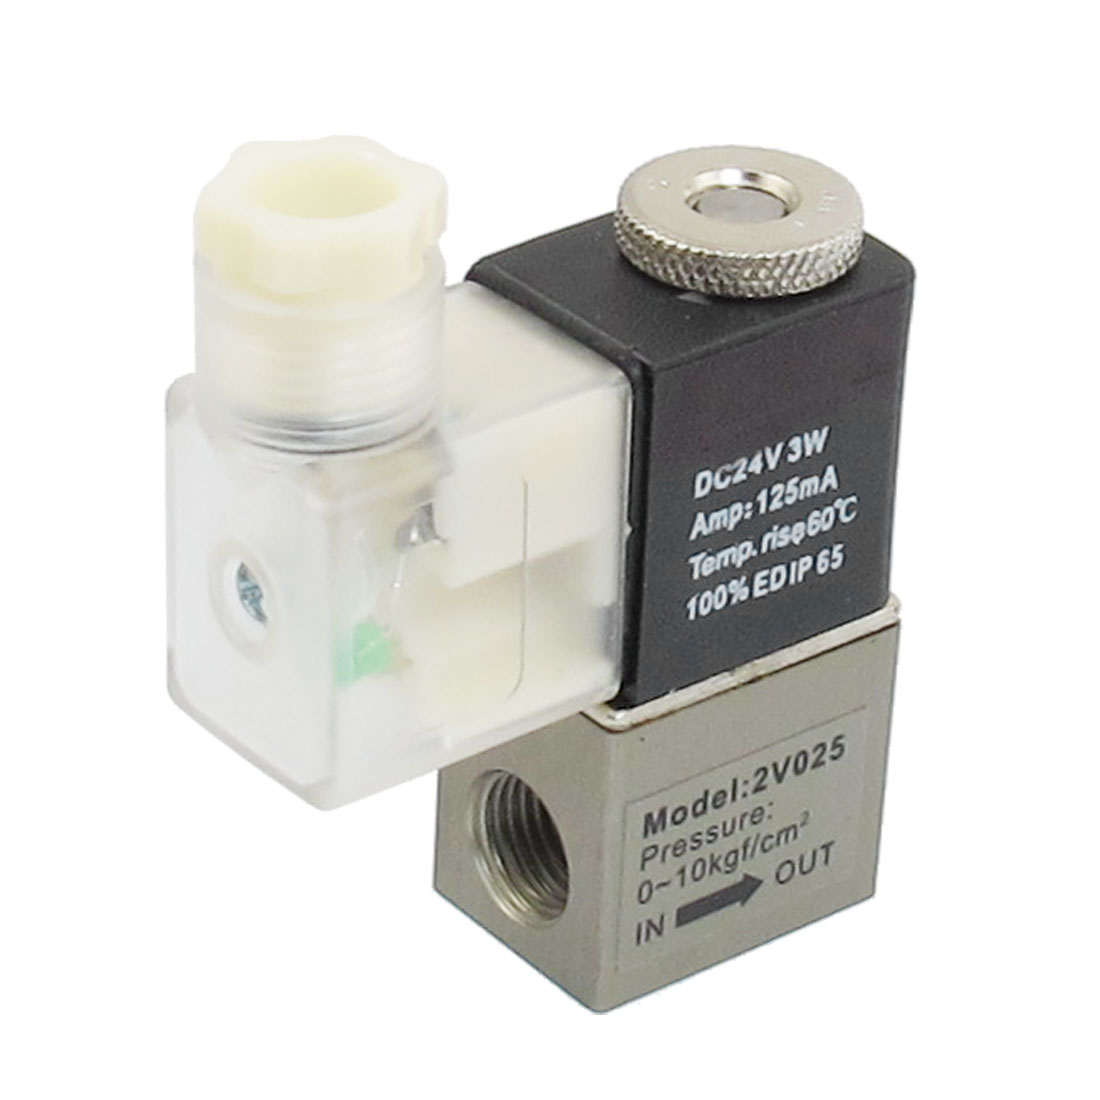 DC 24V 125mA 3W 2 Position 2 Way Pneumatic Electromagnetic Solenoid Valve G1/4""